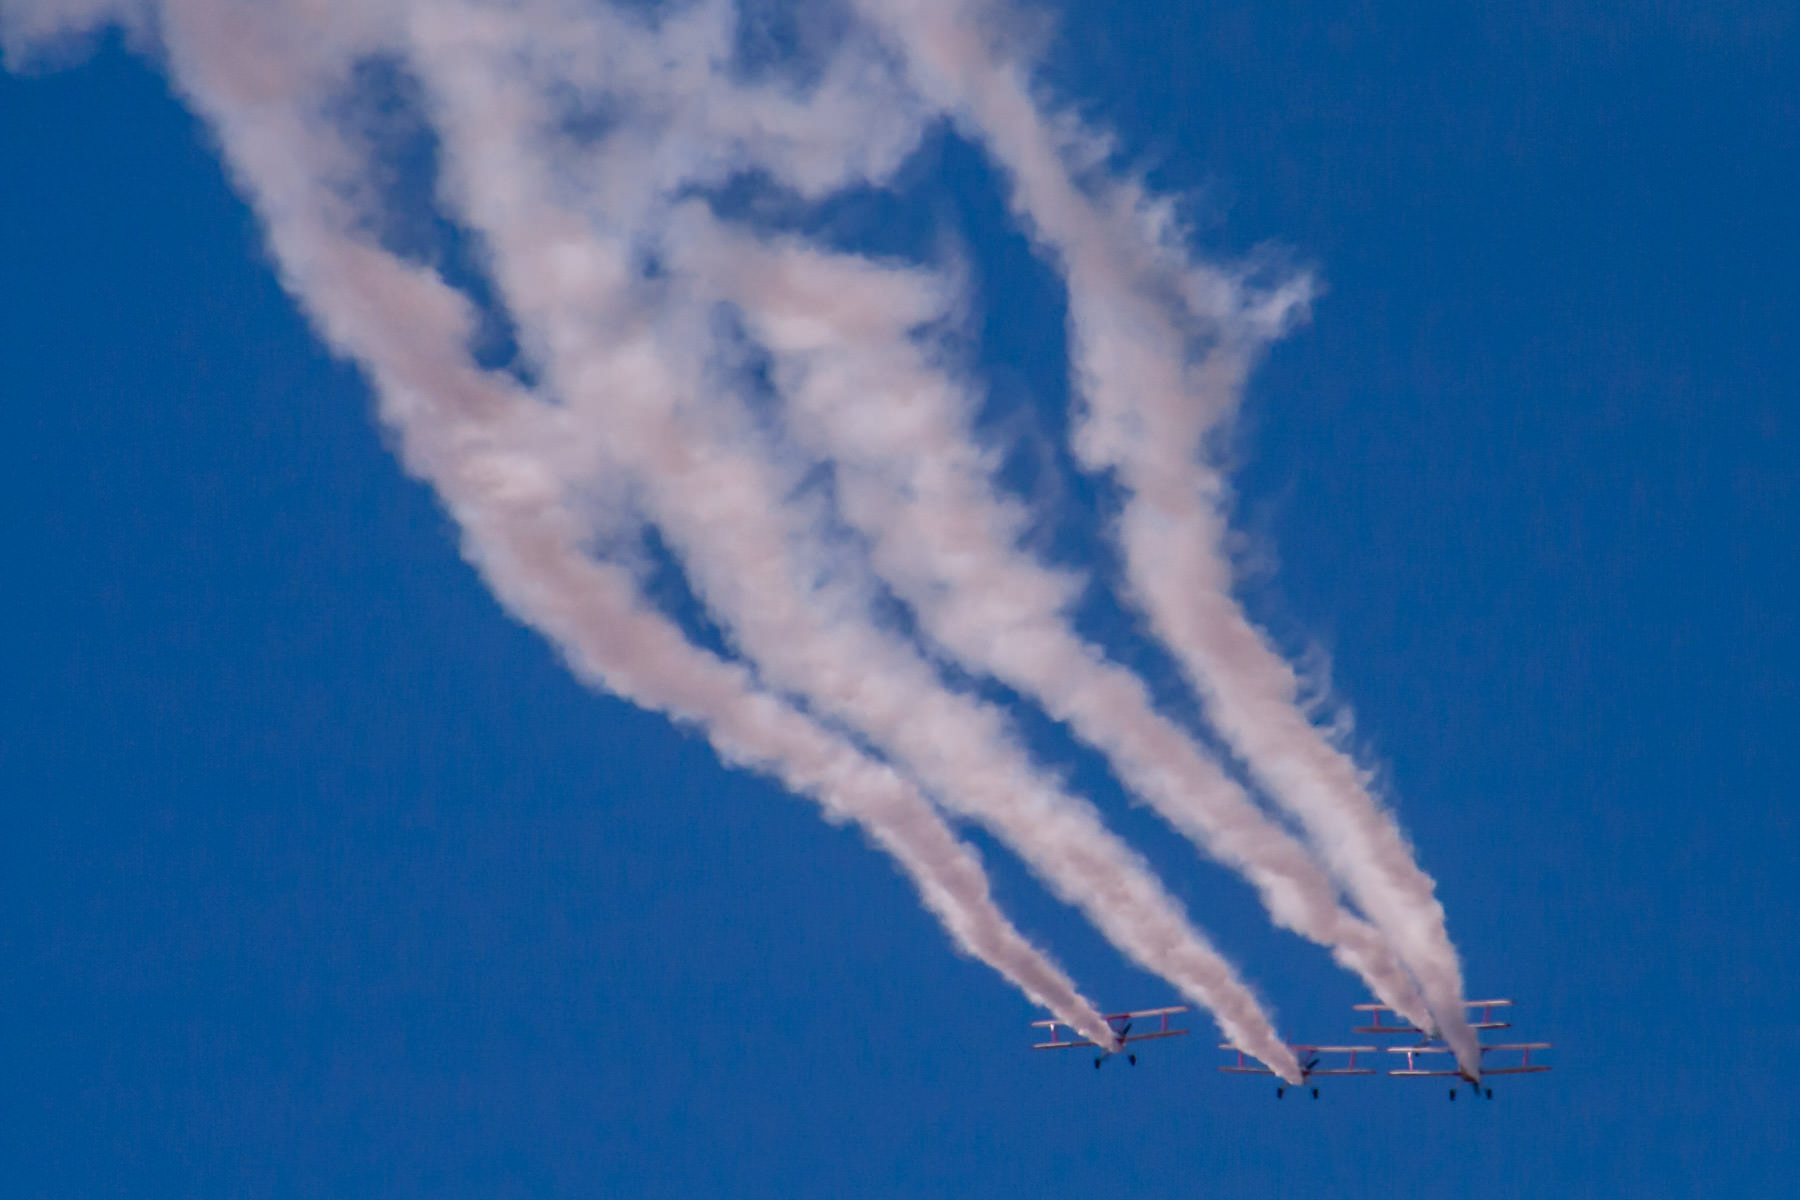 Biplanes leave smoke trails at the Fort Worth-Alliance Air Show.